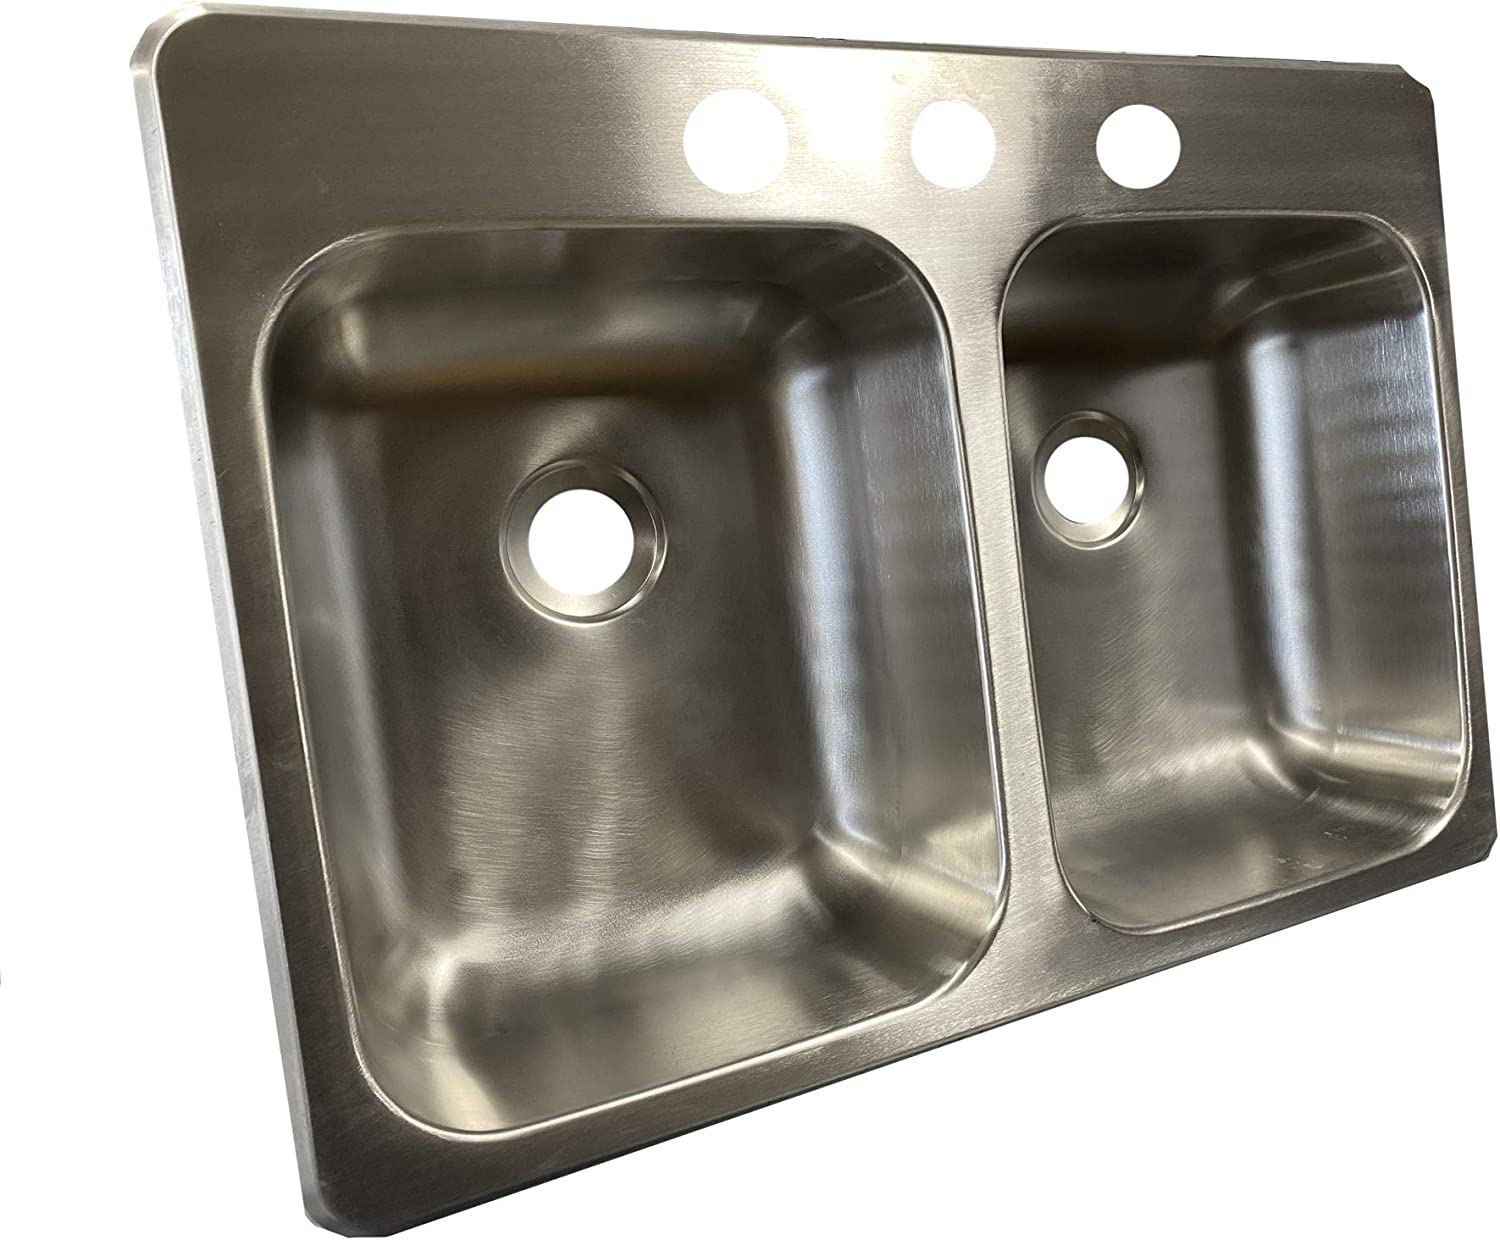 25 X 17 X 5 Stainless Steel Double Bowl Sink 300 Series Stainless Steel Class A Customs RV Camper Motor Home Sink Concession Sink